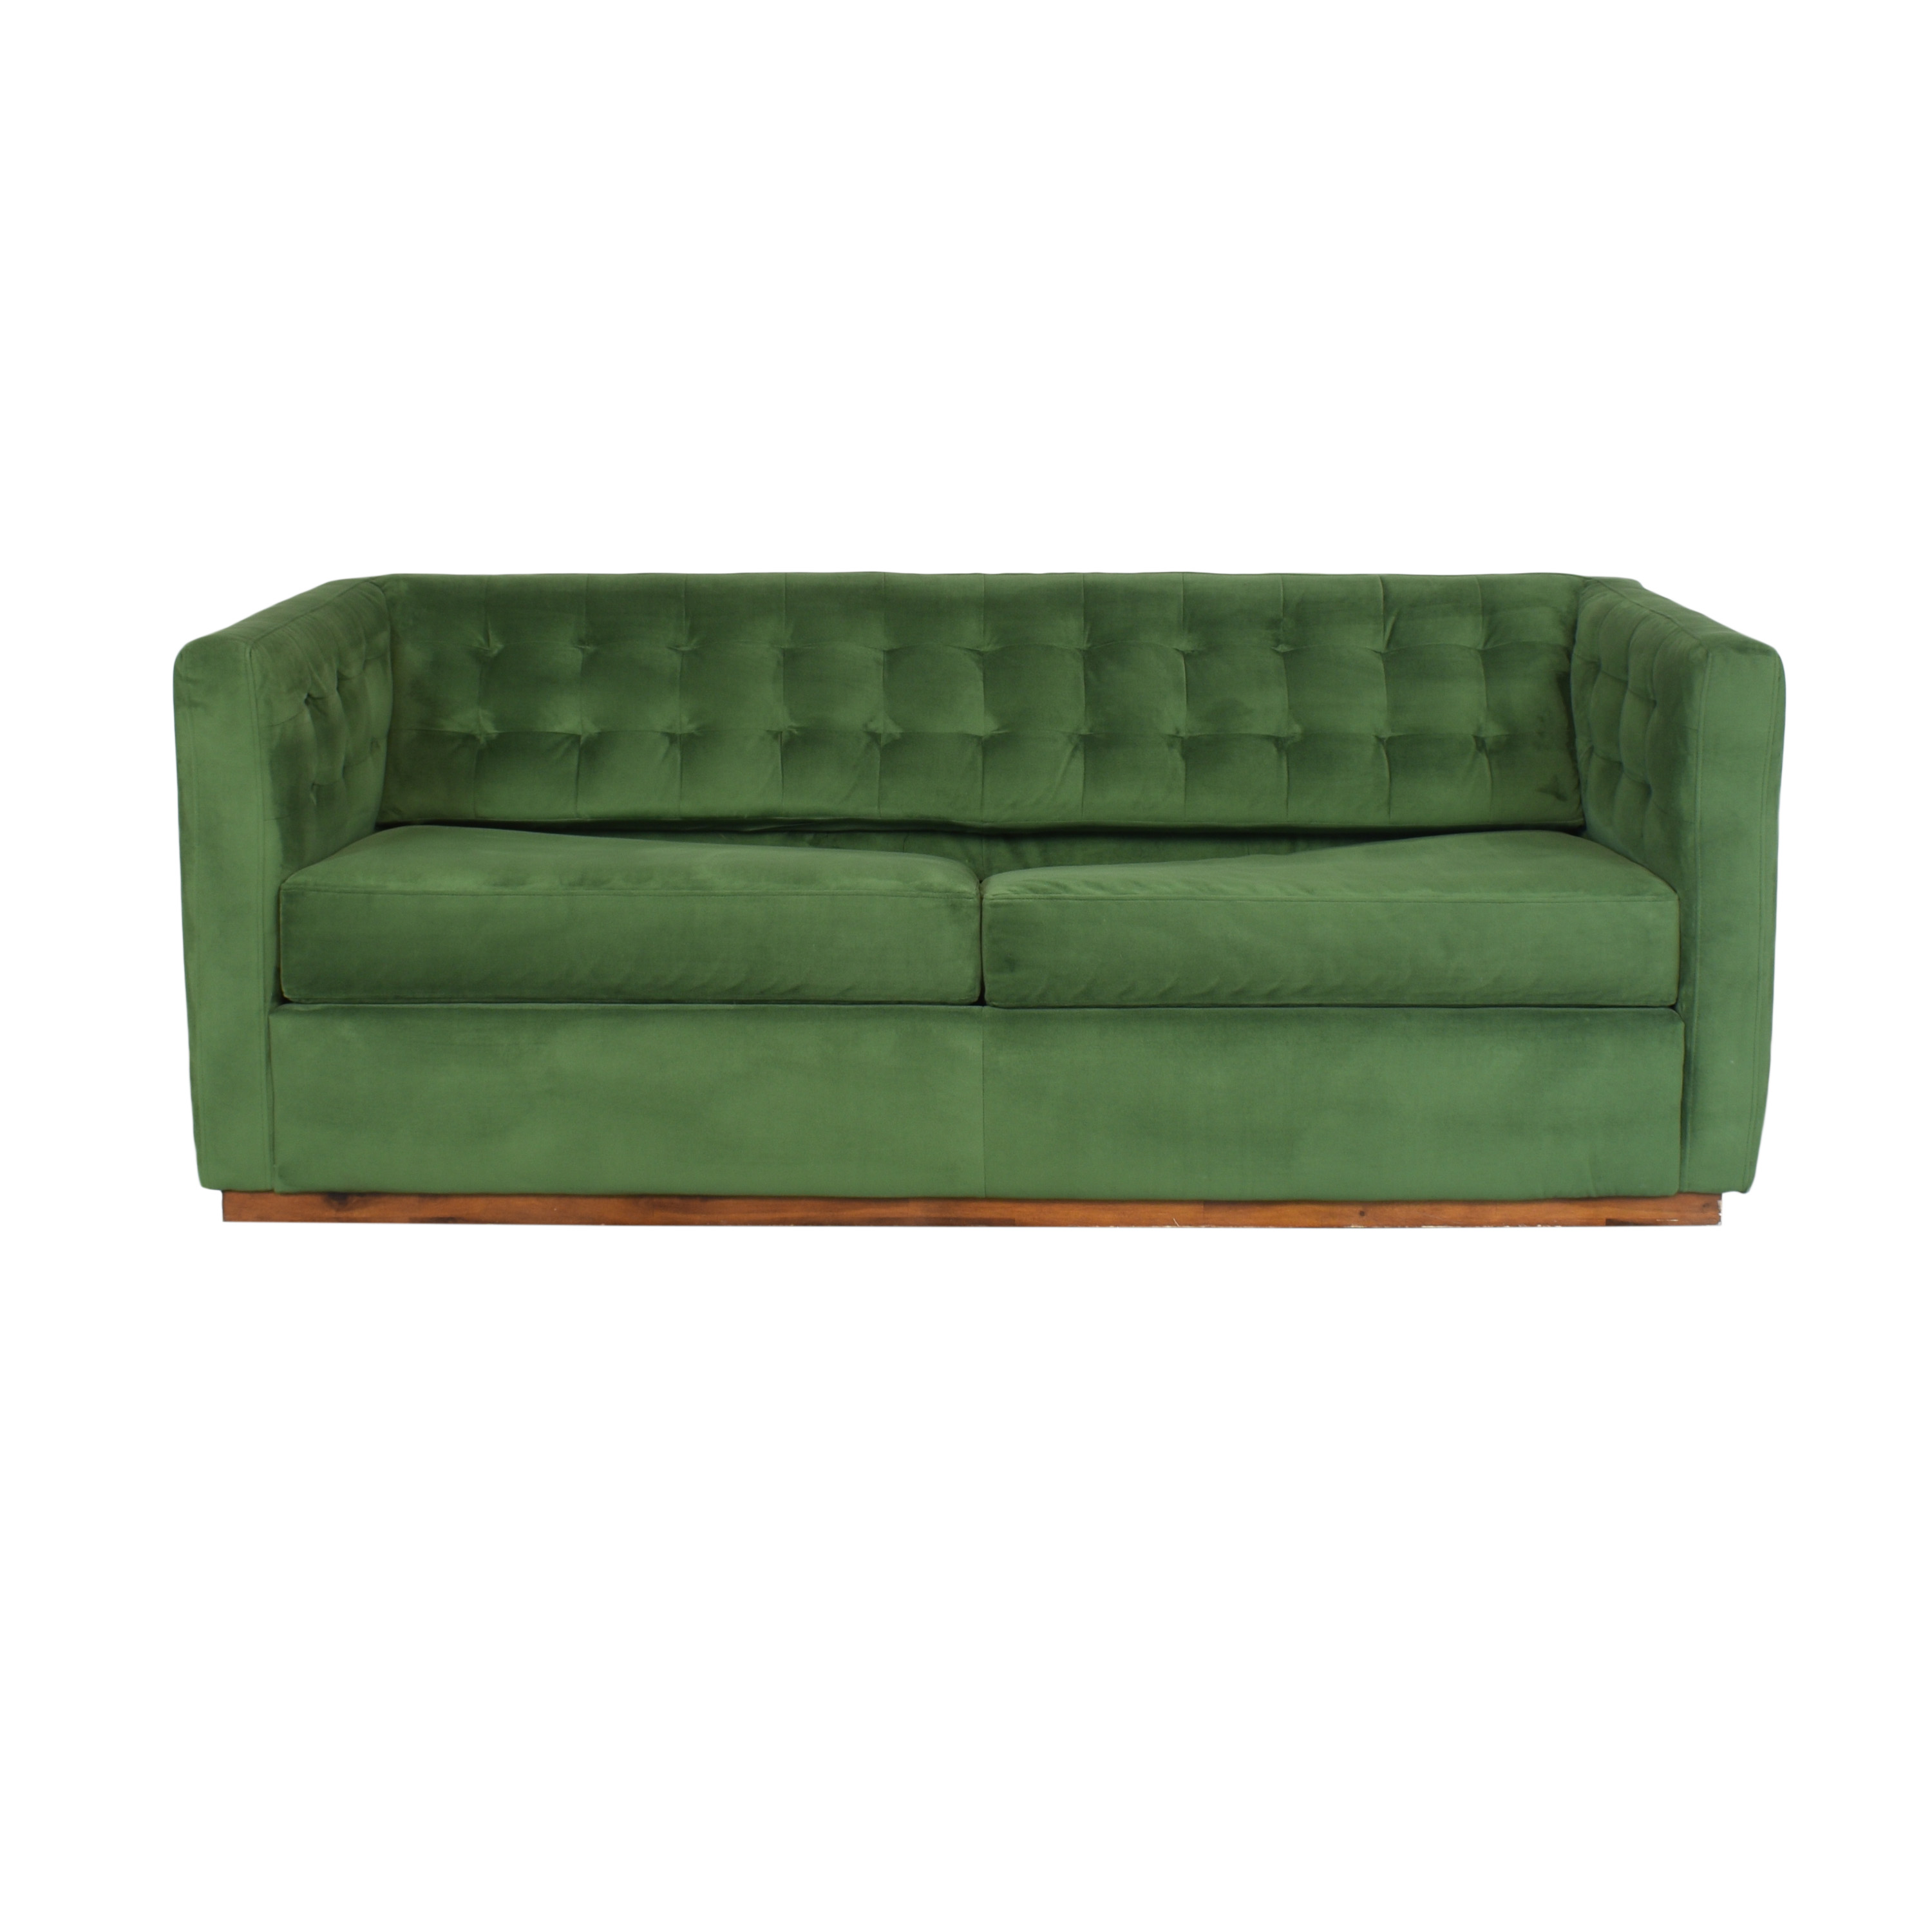 buy West Elm Rochester Sleeper Sofa West Elm Sofas